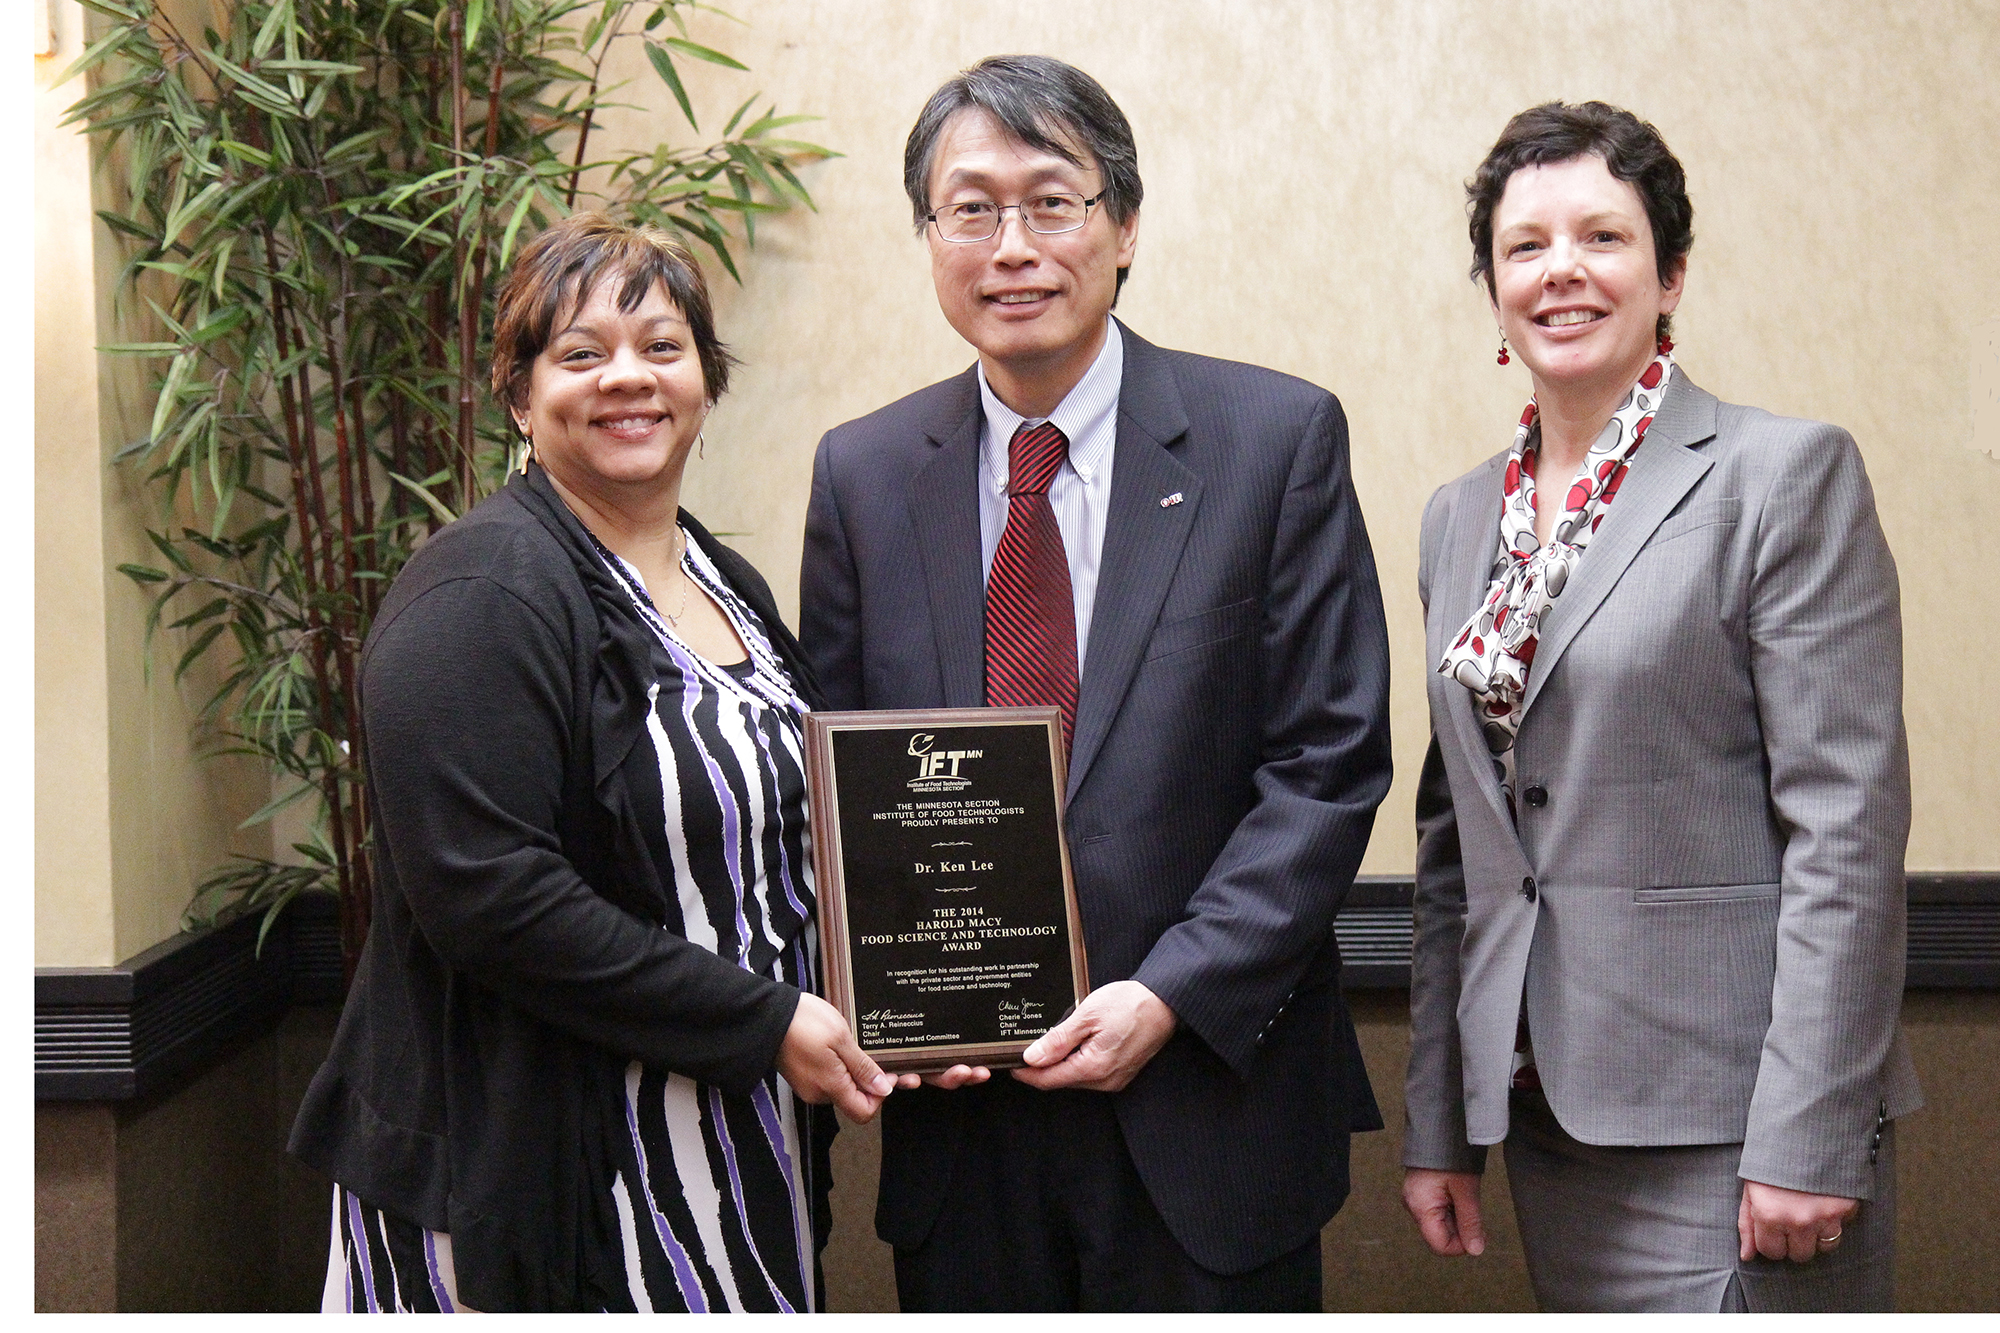 Ken Lee - 2014 Macy Award Winner